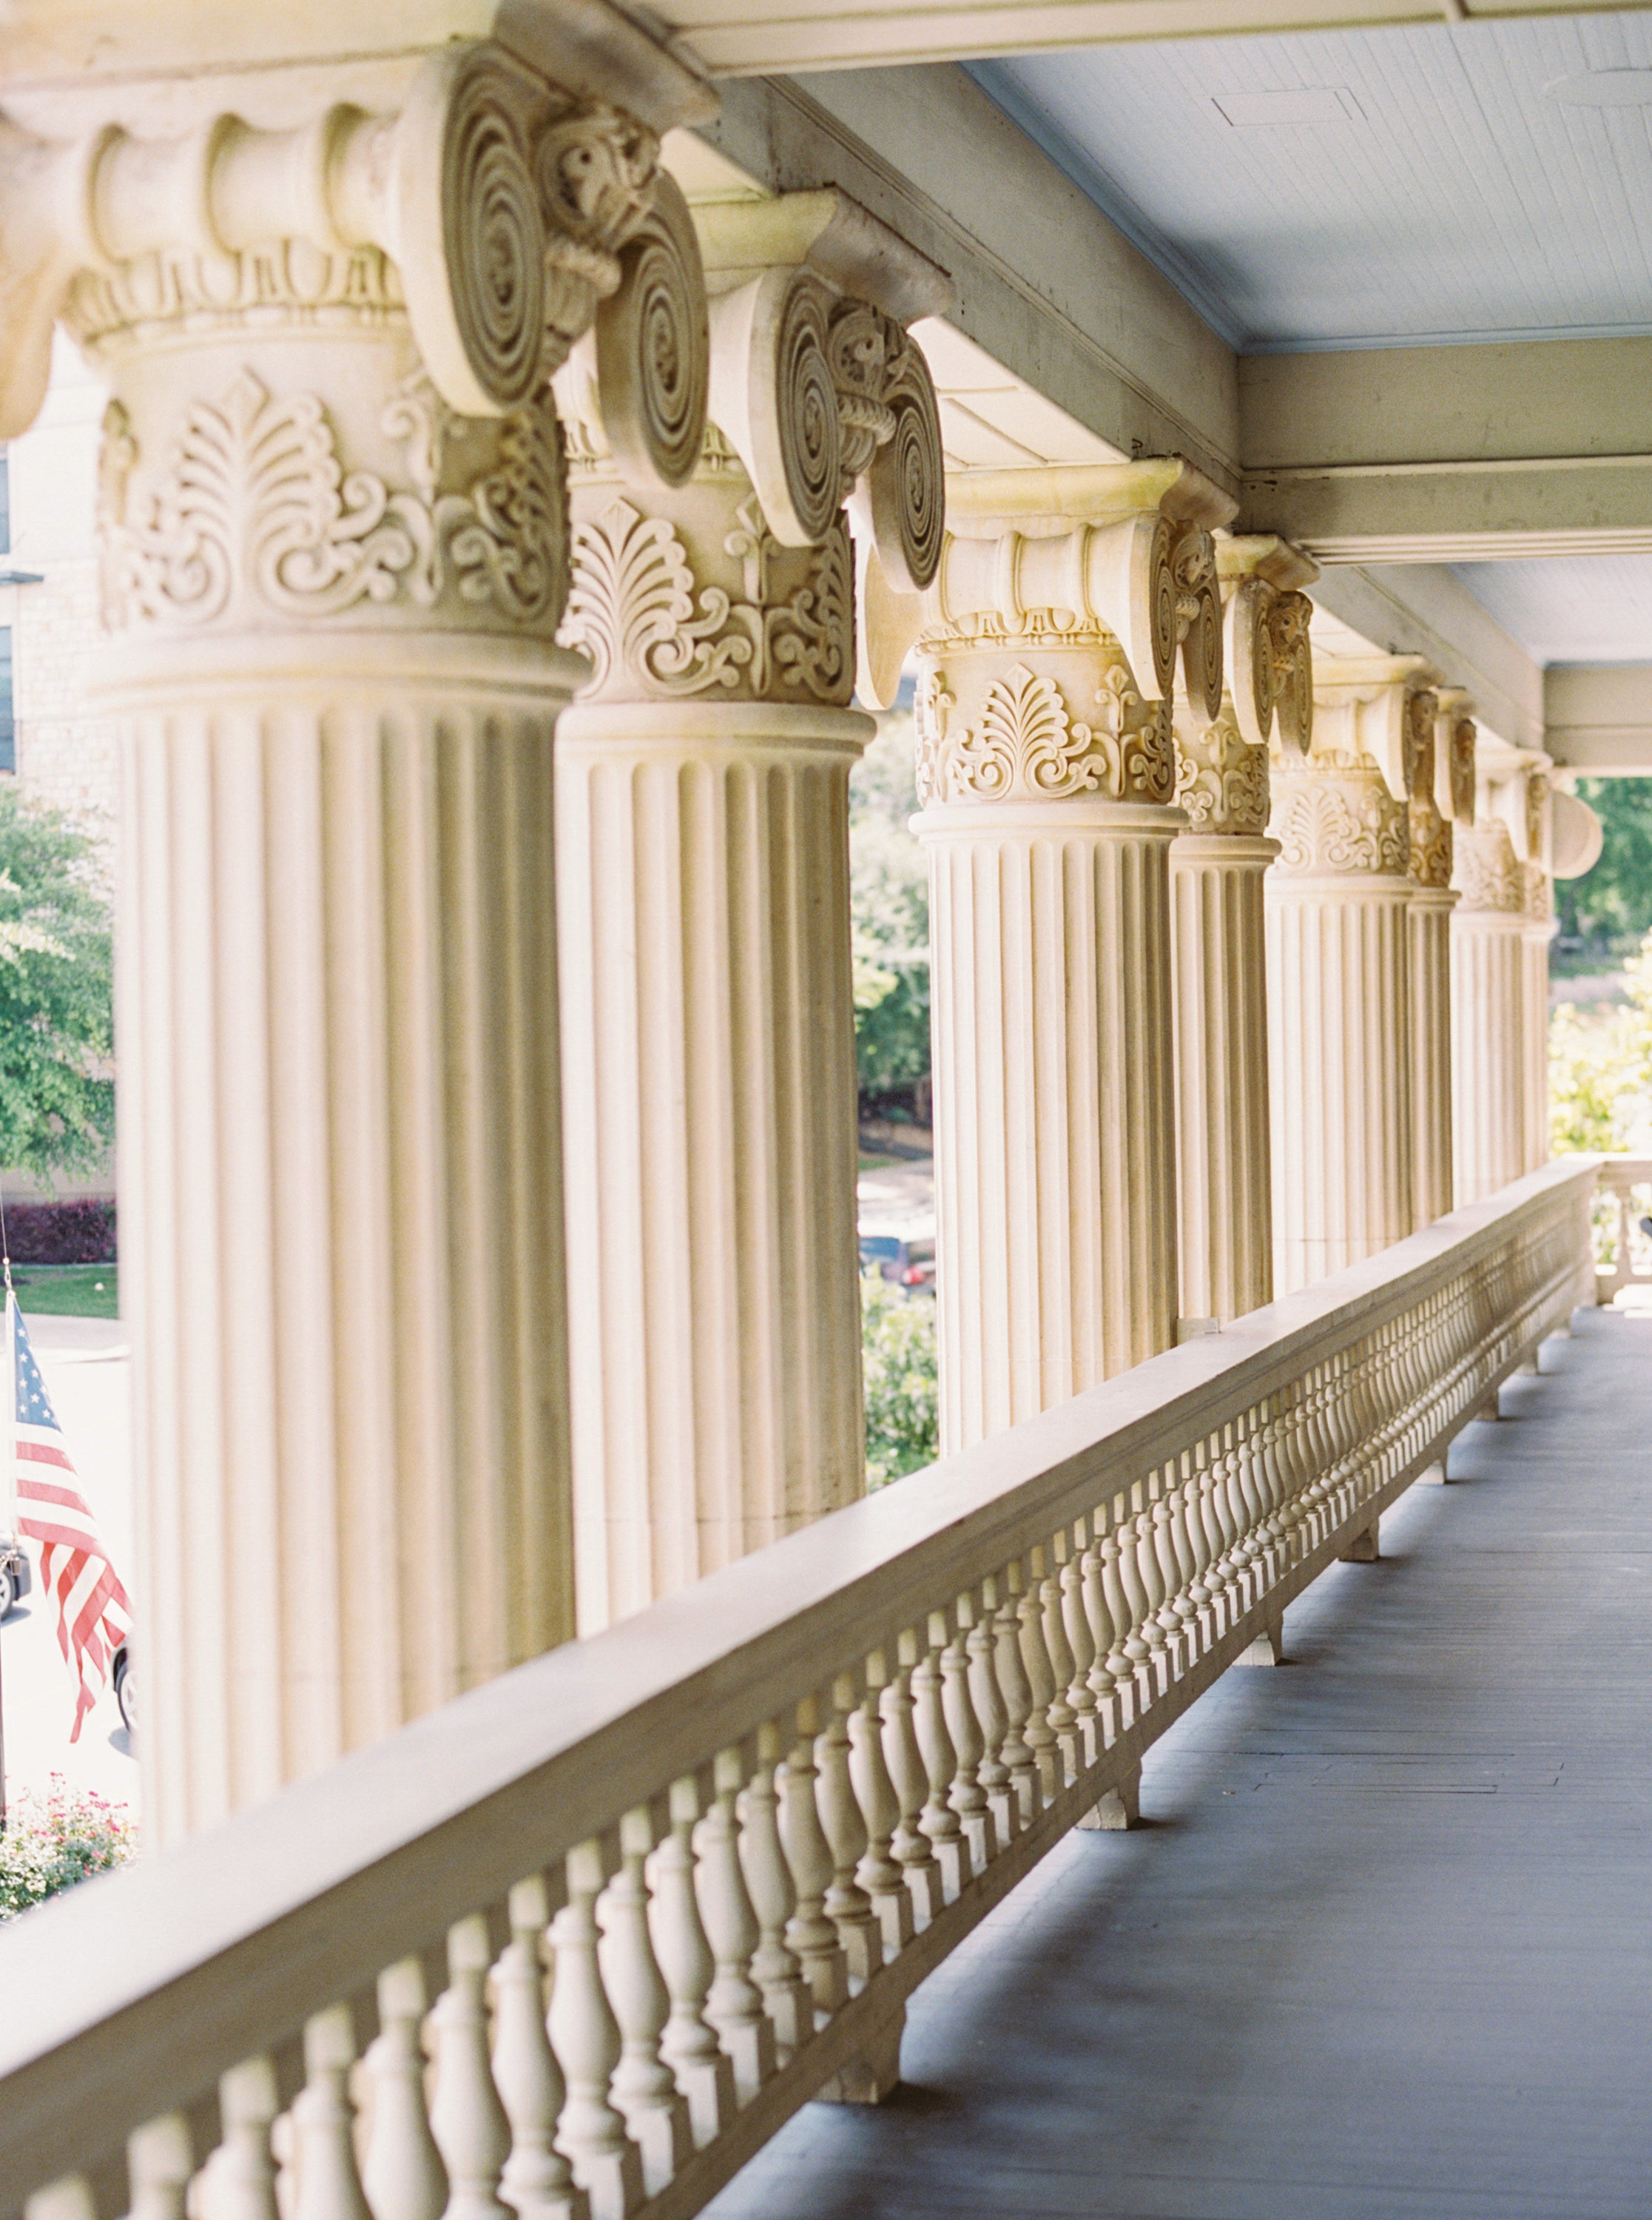 historical building balcony european style architecture